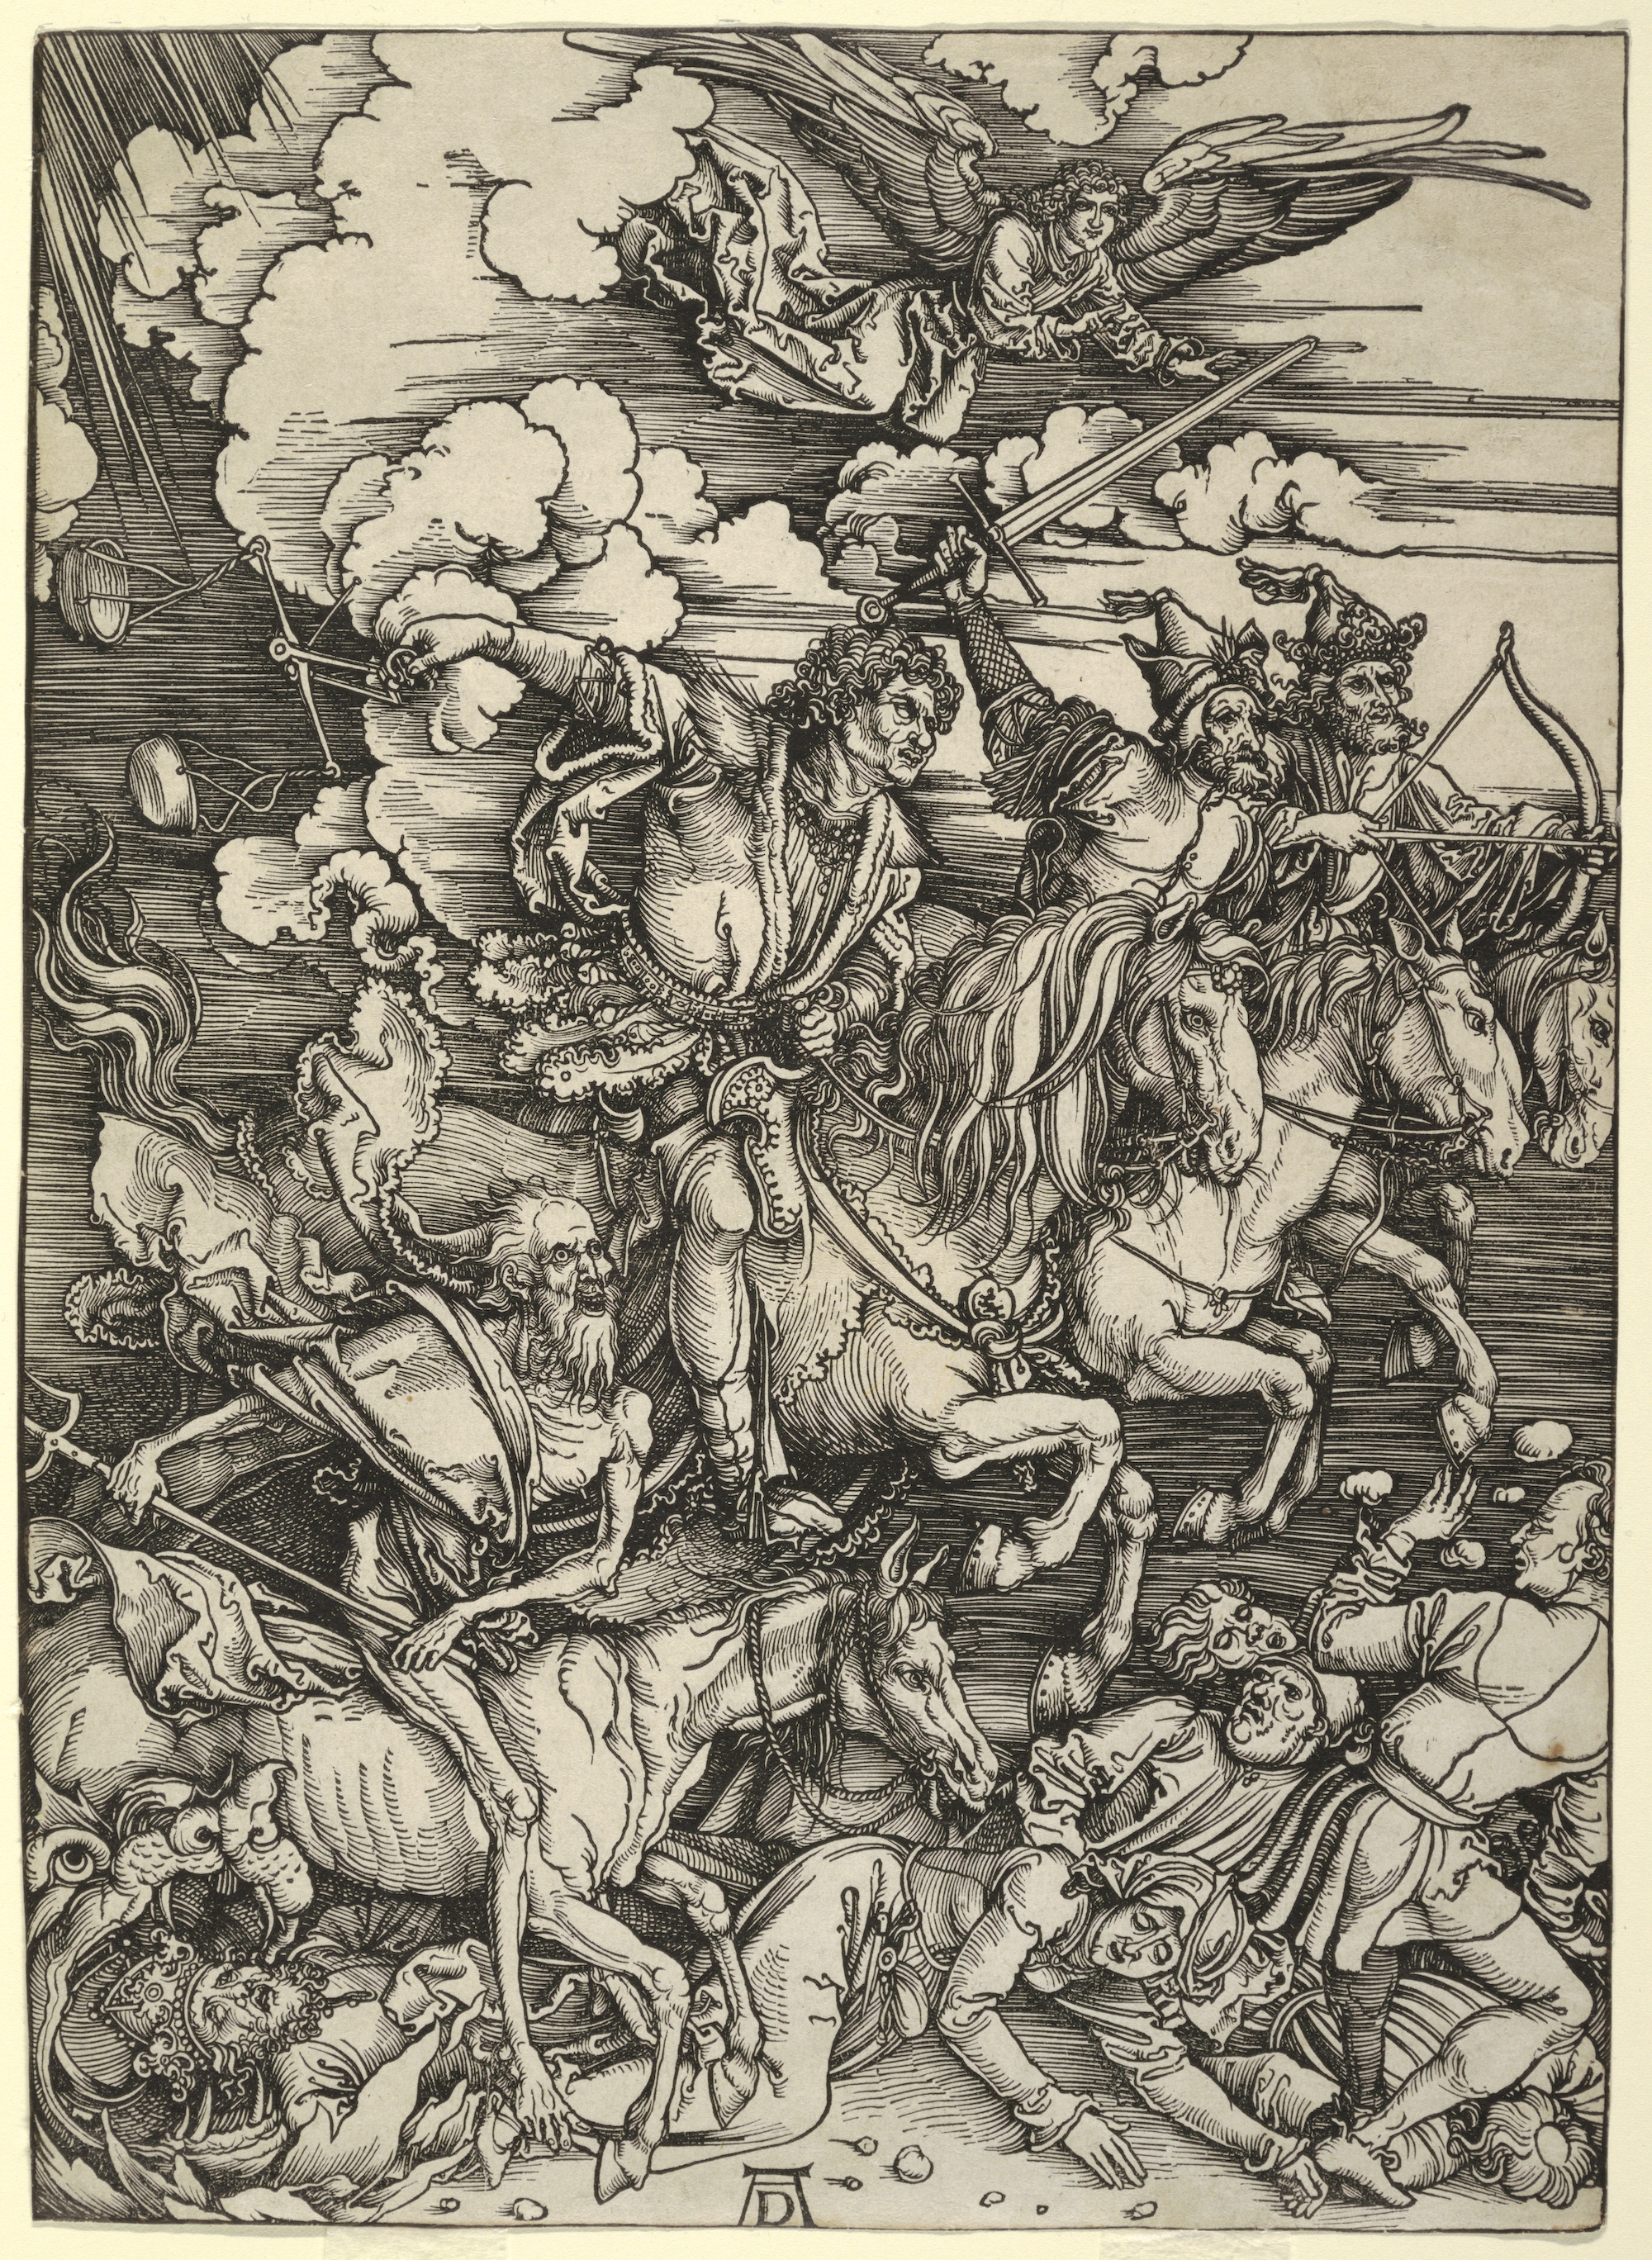 Four men, with weapons drawn, on horseback riding over people. Angel flying above.